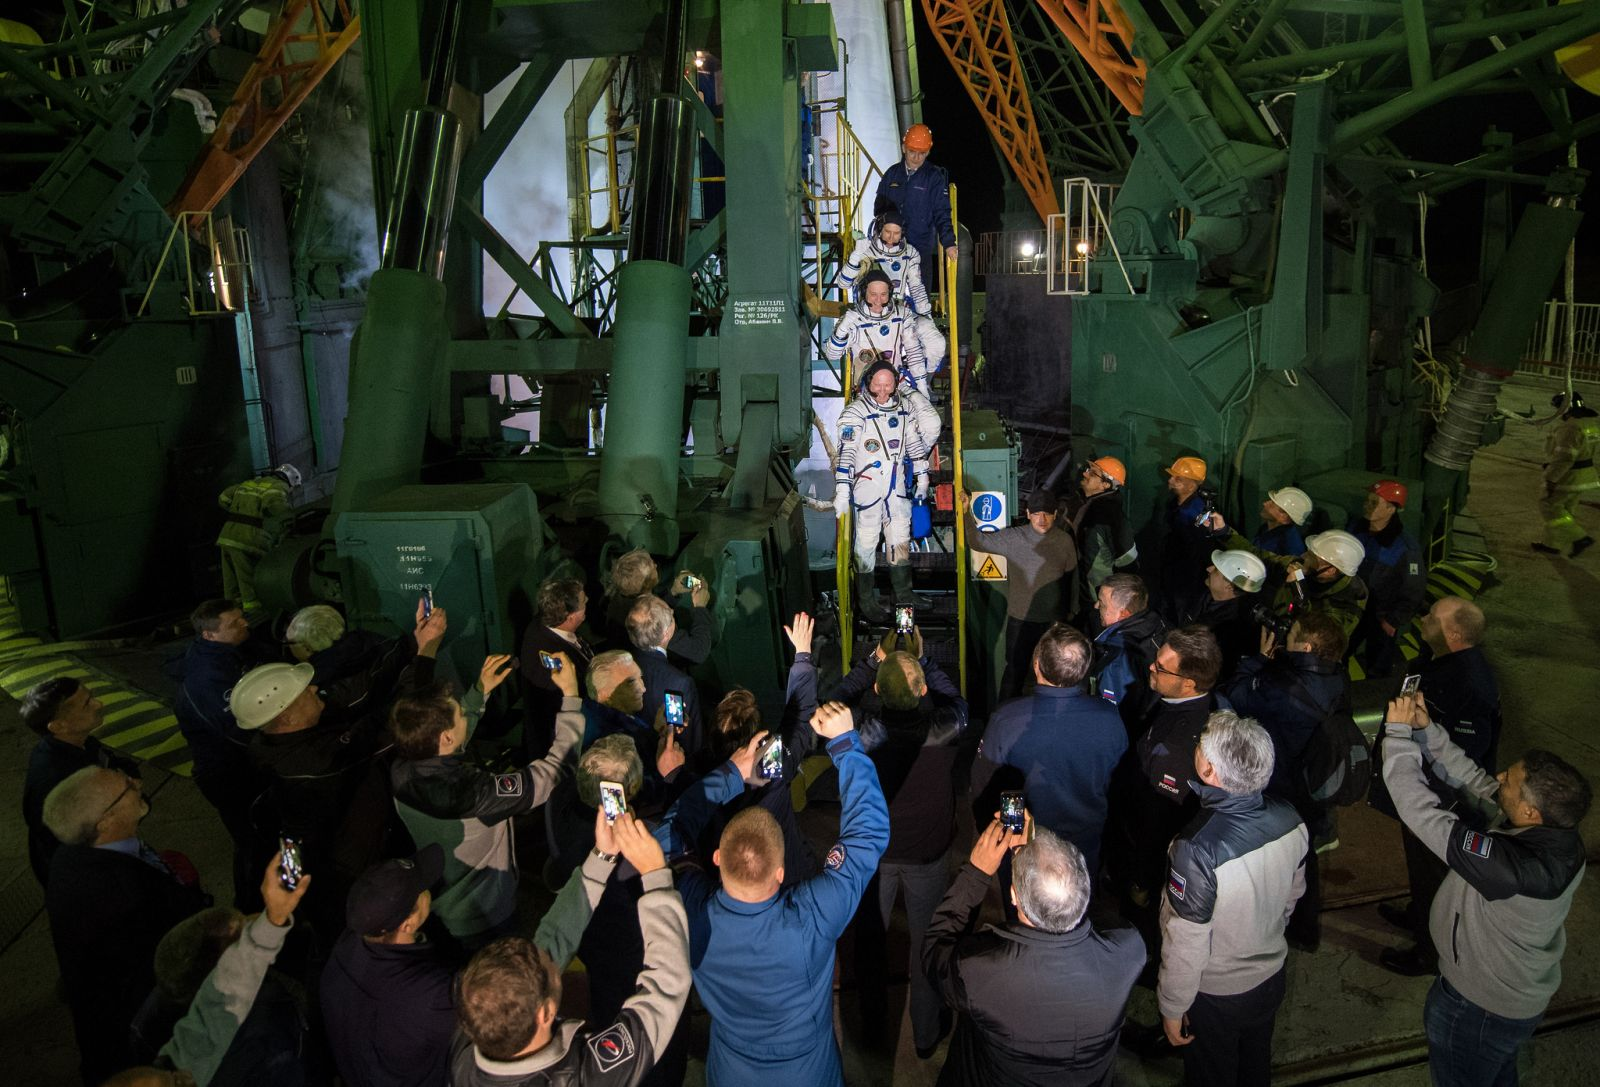 The Soyuz MS-08 crew waves goodbye at the base of the Soyuz-FG rocket. Photo Credit: Joel Kowsky / NASA